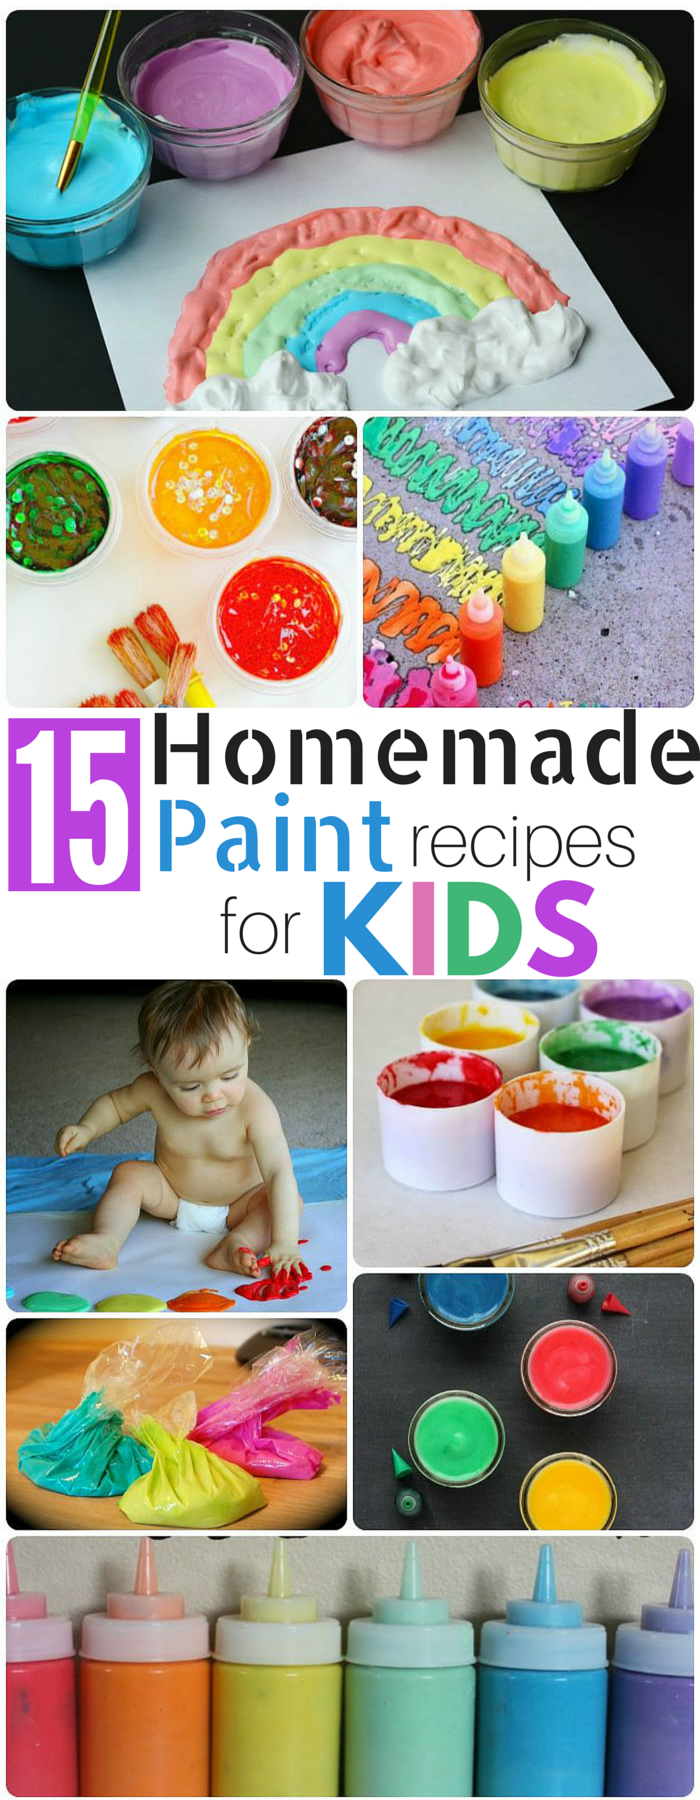 What an incredible round up of homemade paint for kids! Why have I been buying paint all this time??